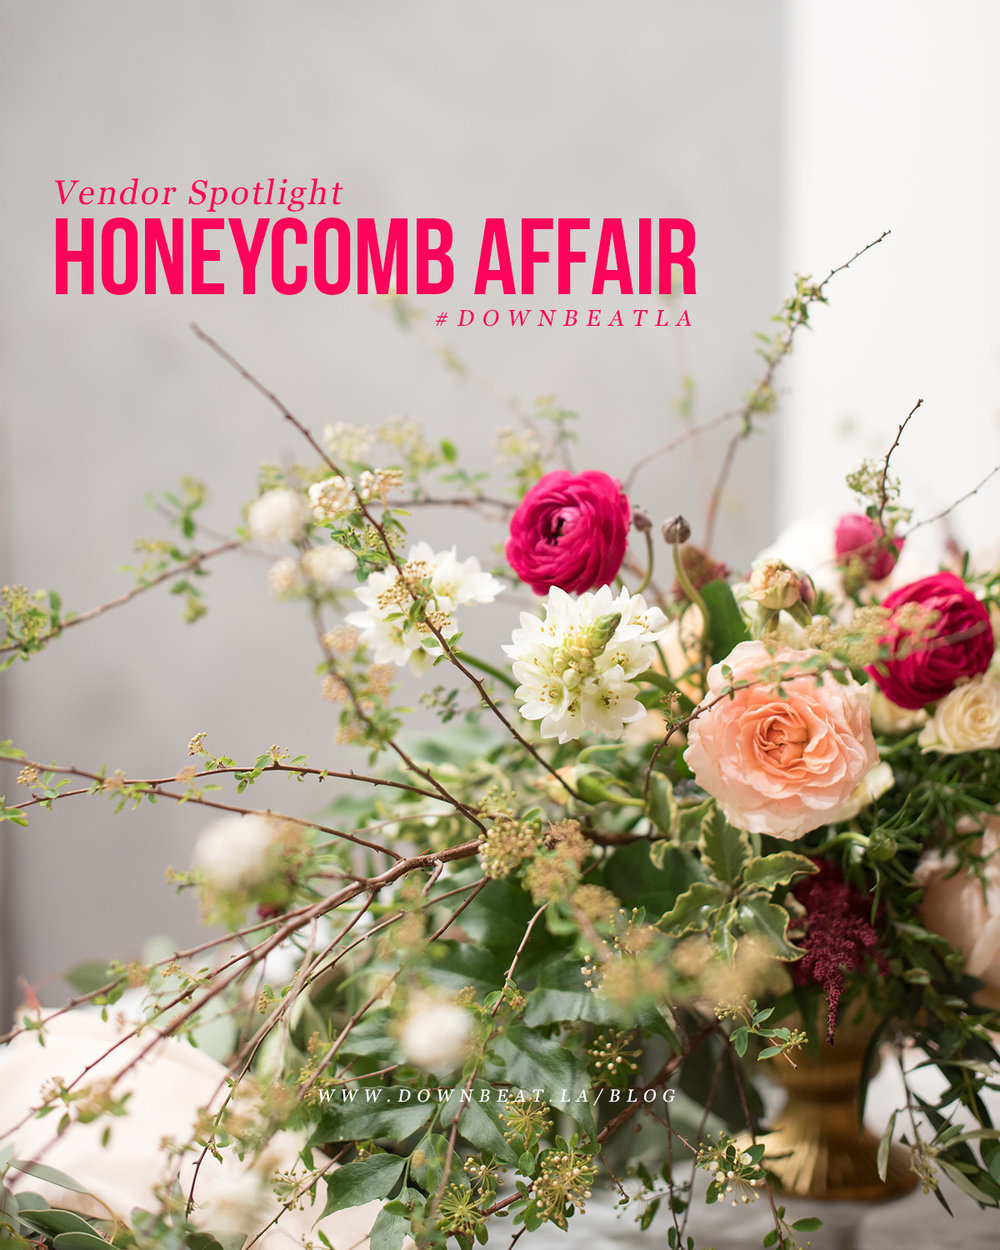 Honeycomb Affair-Insta-Graphic.jpg